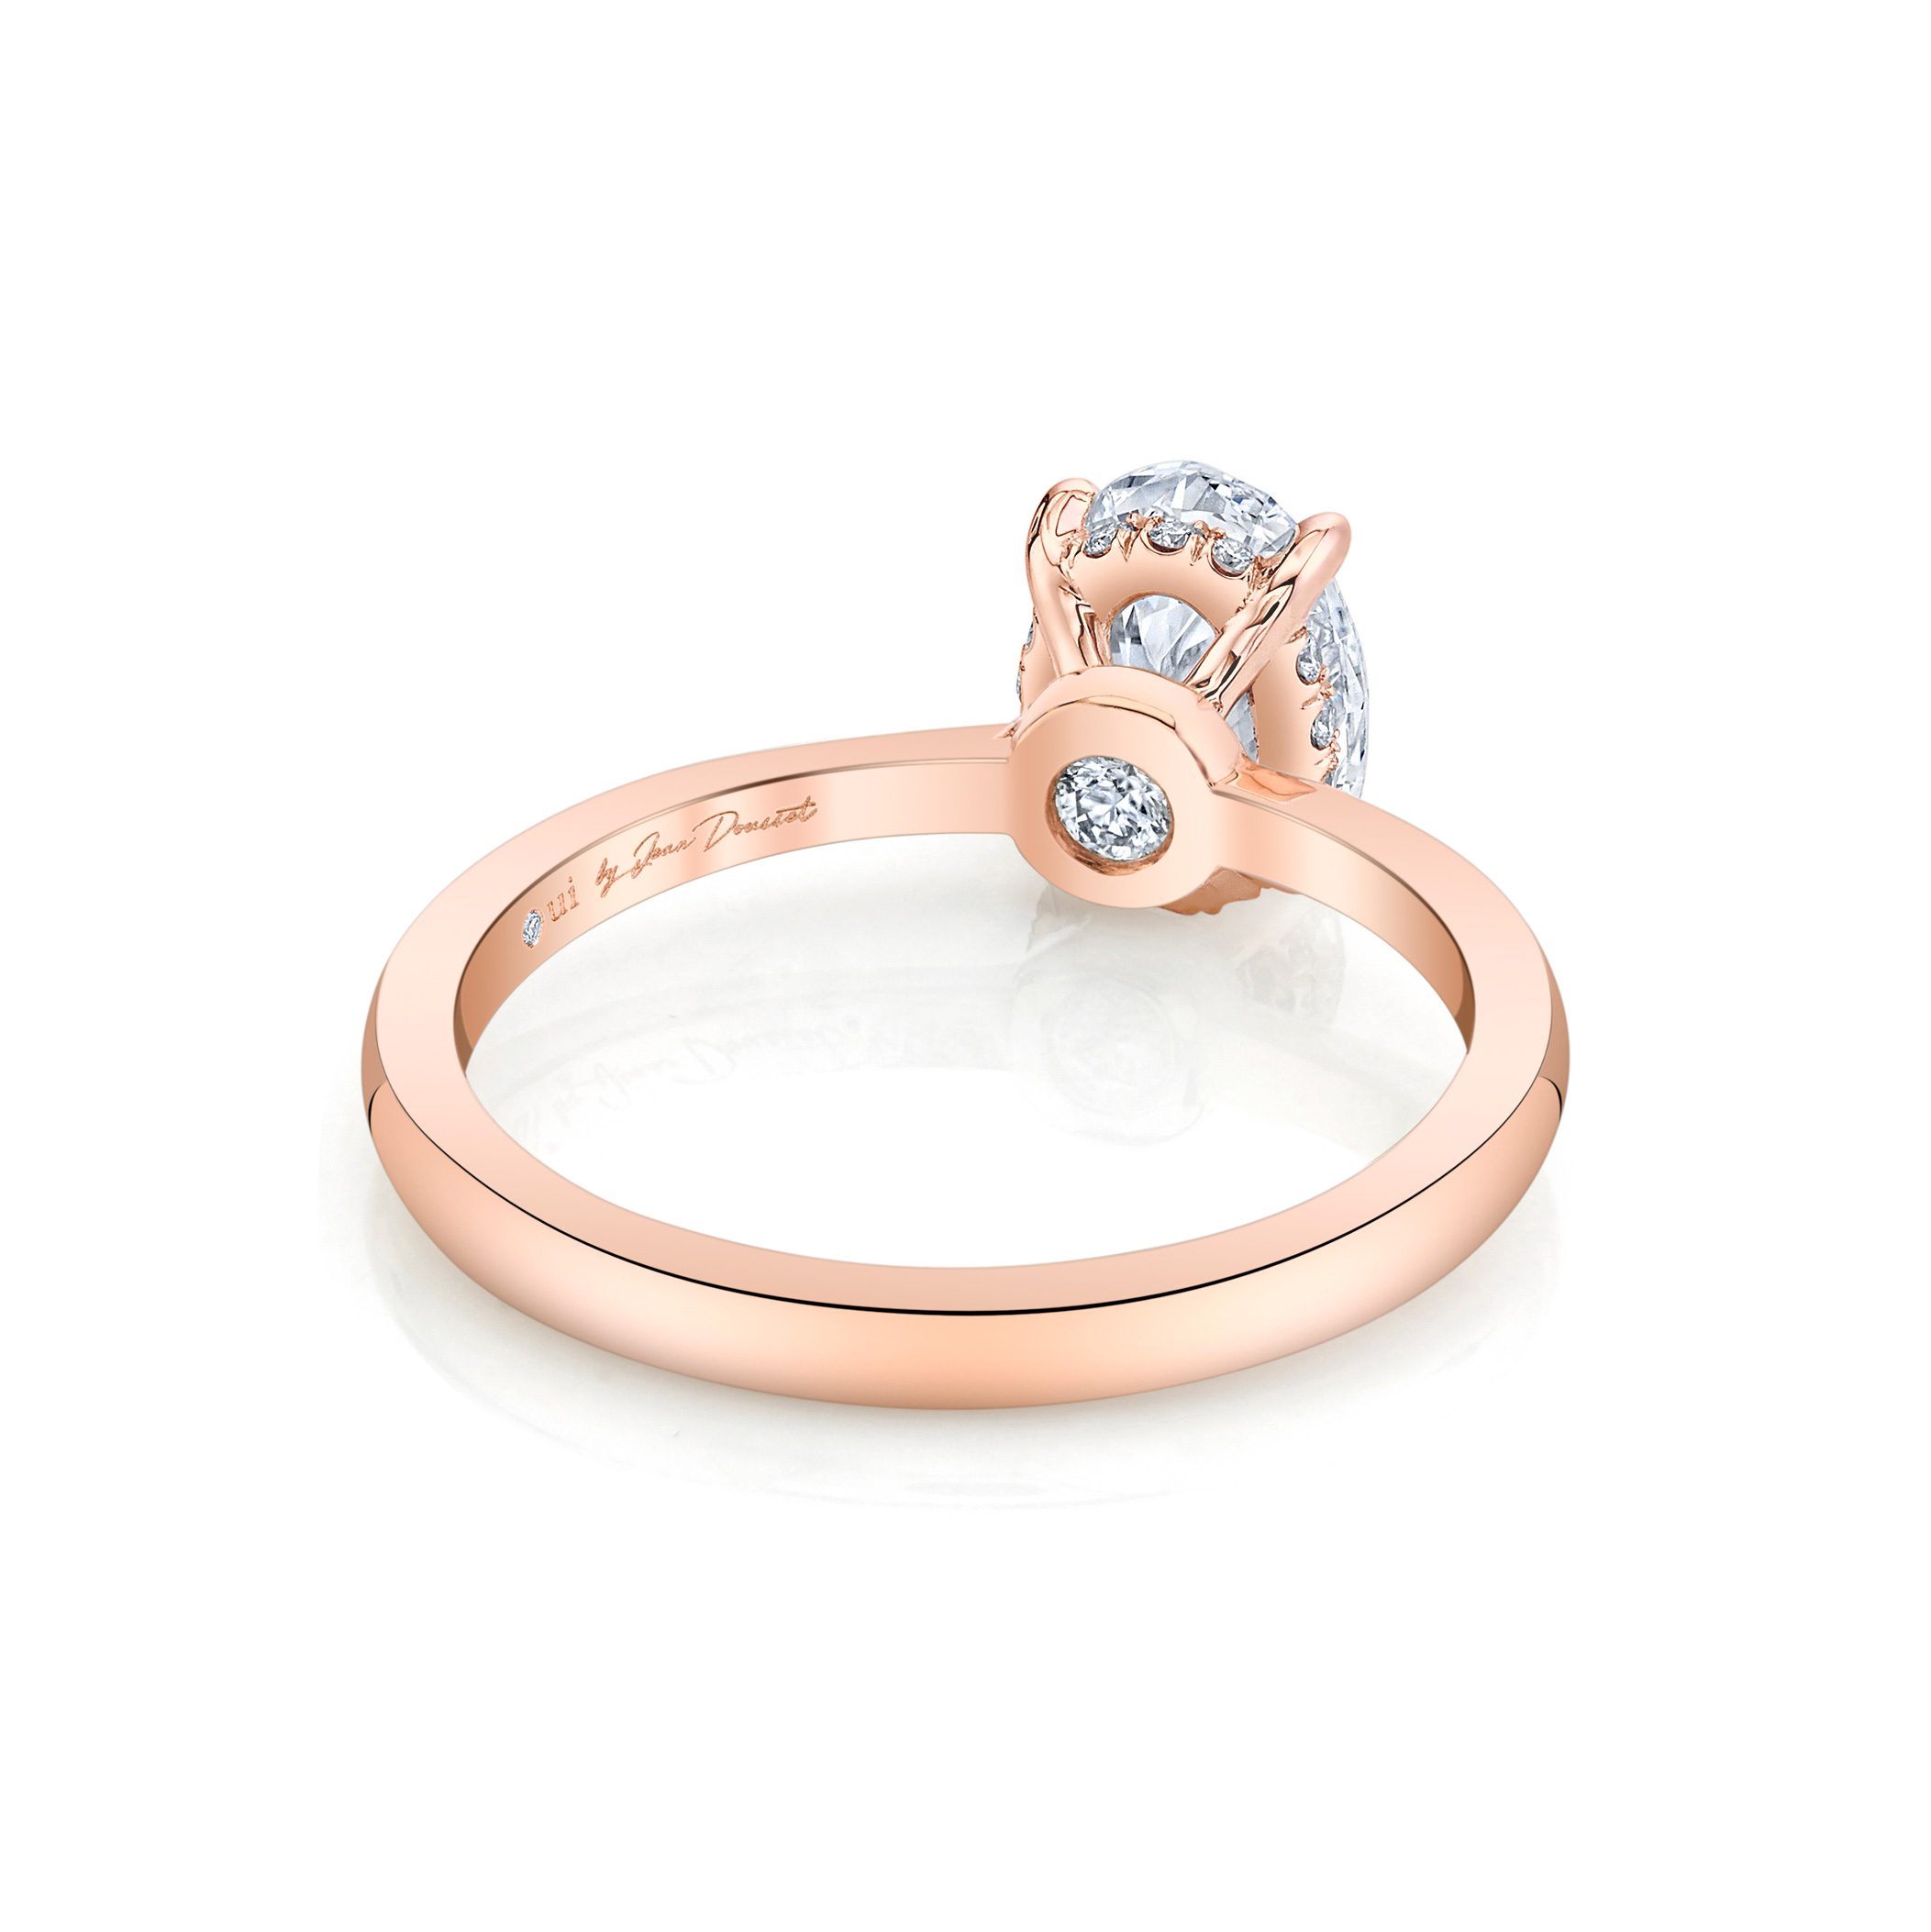 Colette Oval Solitaire Engagement Ring with a sold band in 18k Rose Gold Back Shot by Oui by Jean Dousset